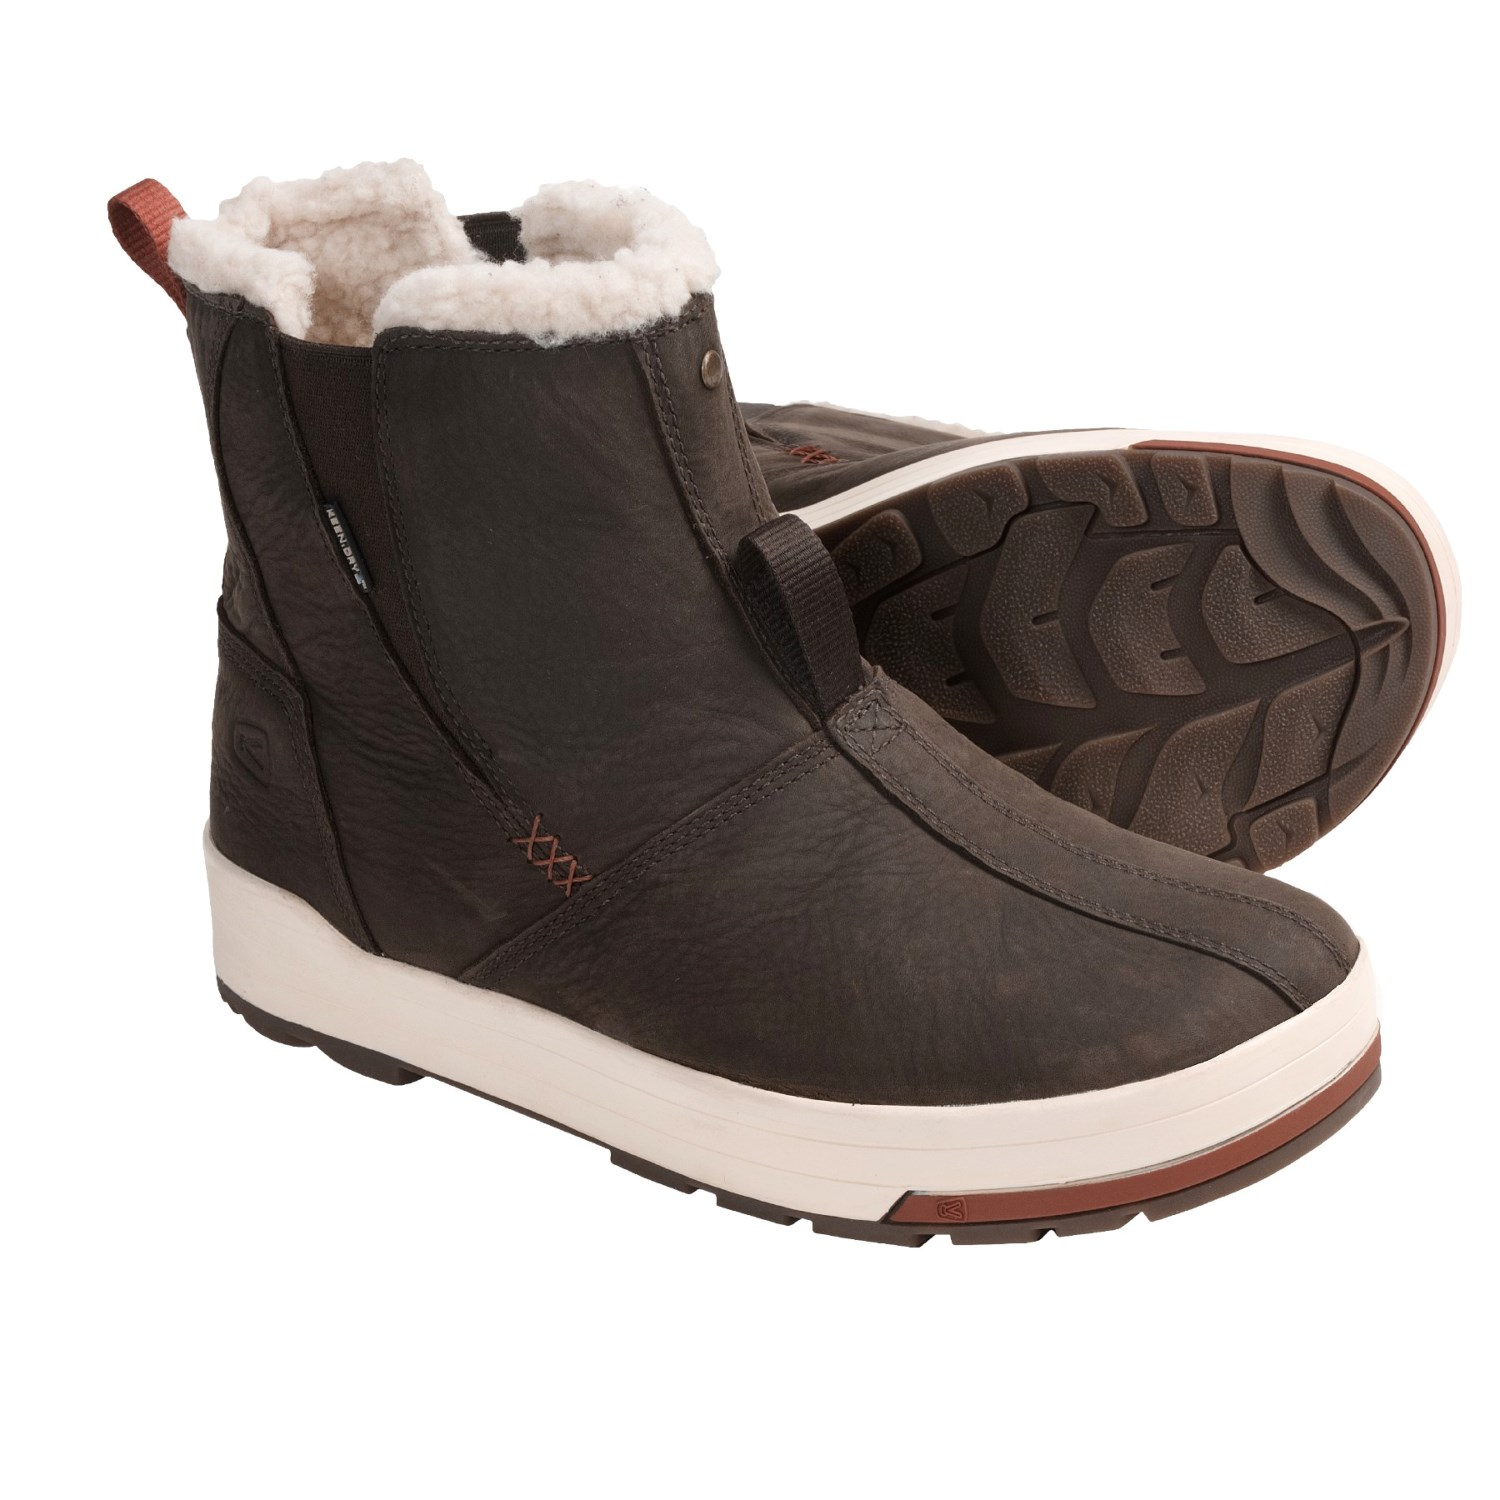 Keen Snowmass Mid Snow Boots - Waterproof, Faux-Shearling